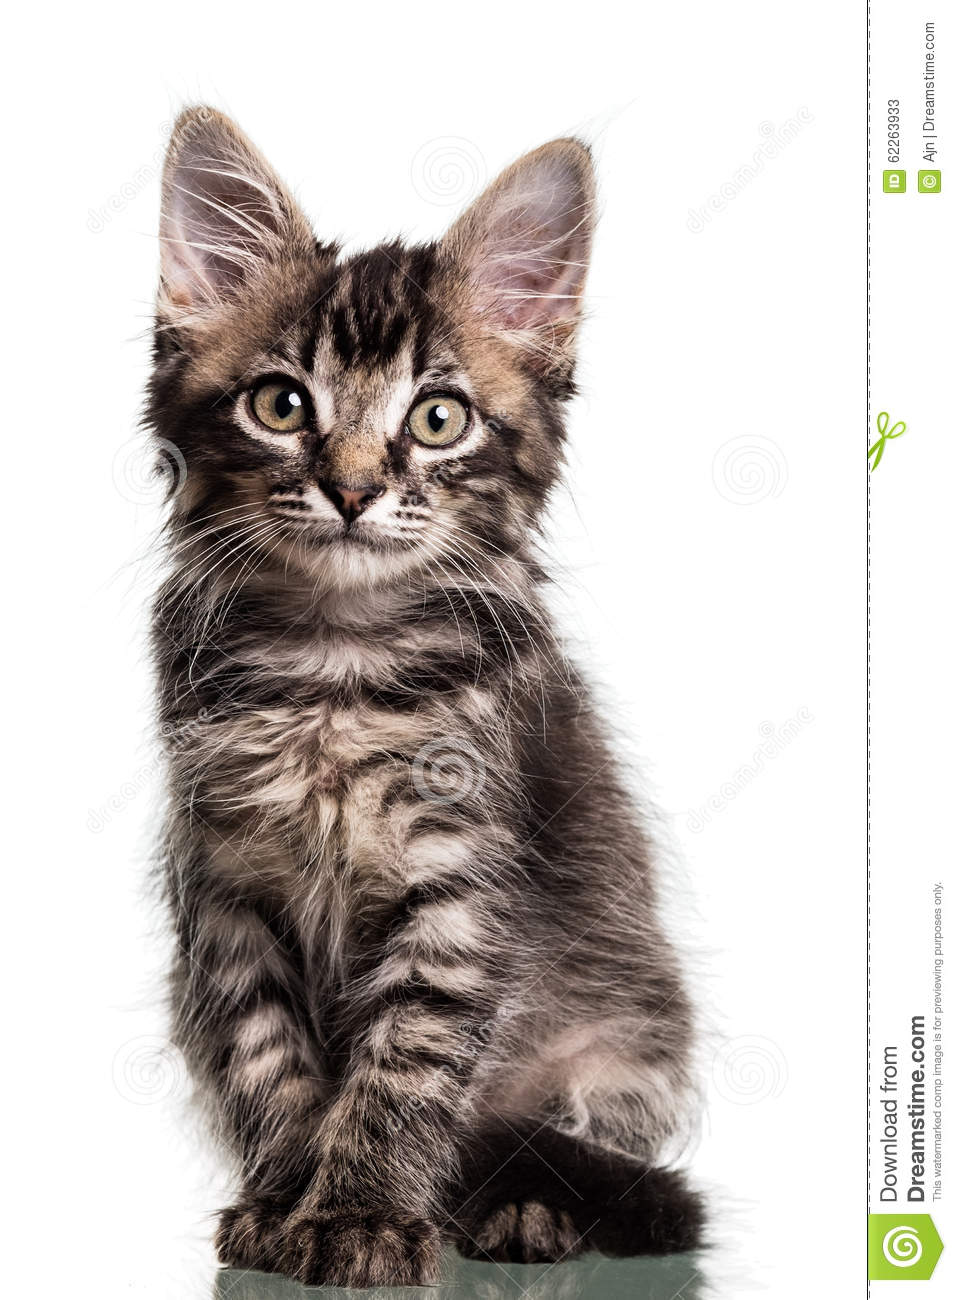 Cute Furry Kitten Stock Image Image Of Relaxed Baby